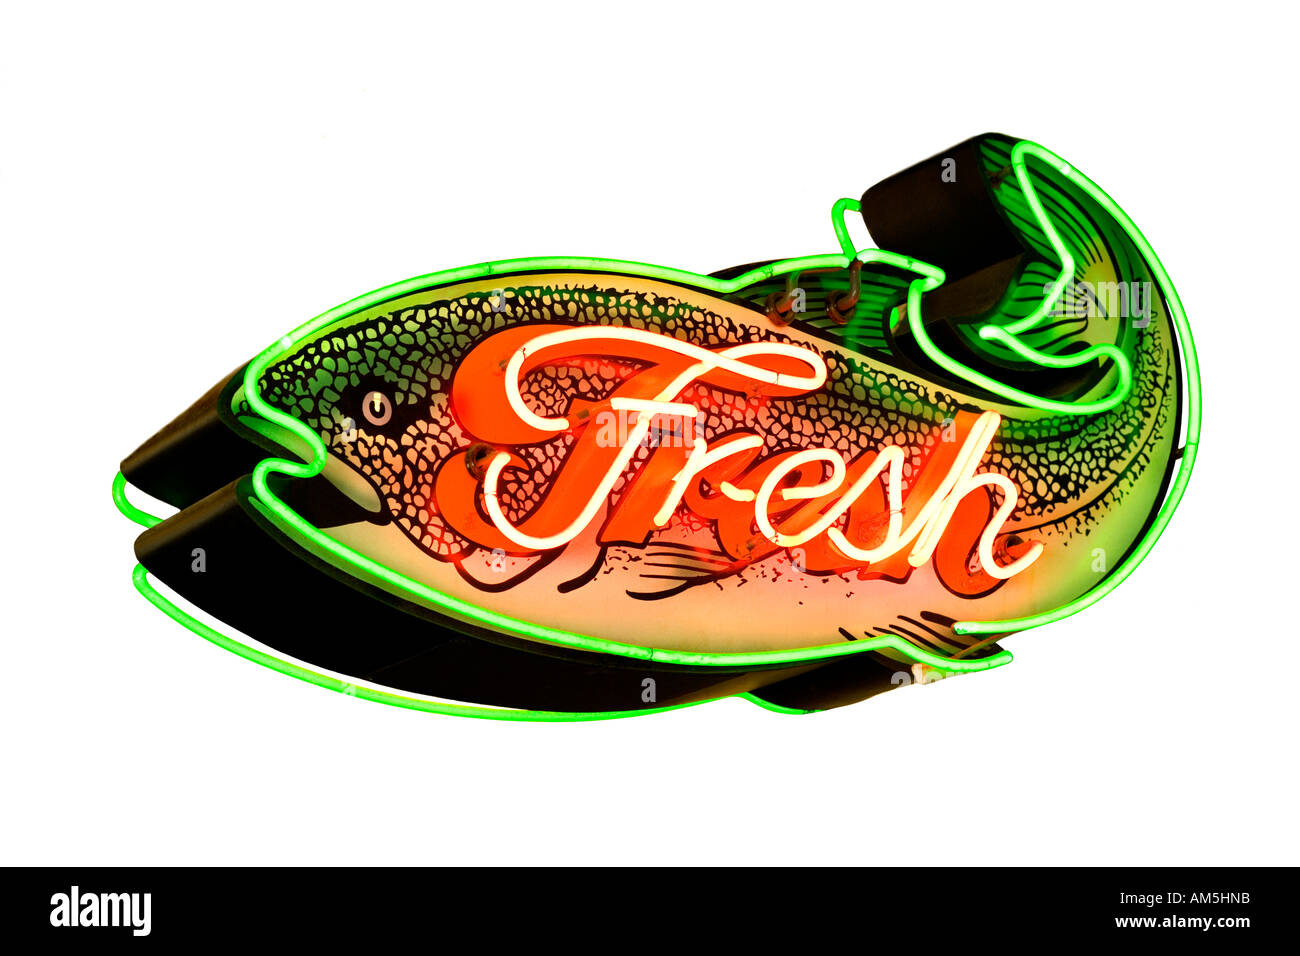 Seattle Pike's Place Market. Cutout neon sign Fresh Fish fresh salmon sign at Pike's fish market. cut out cutout isolated. - Stock Image